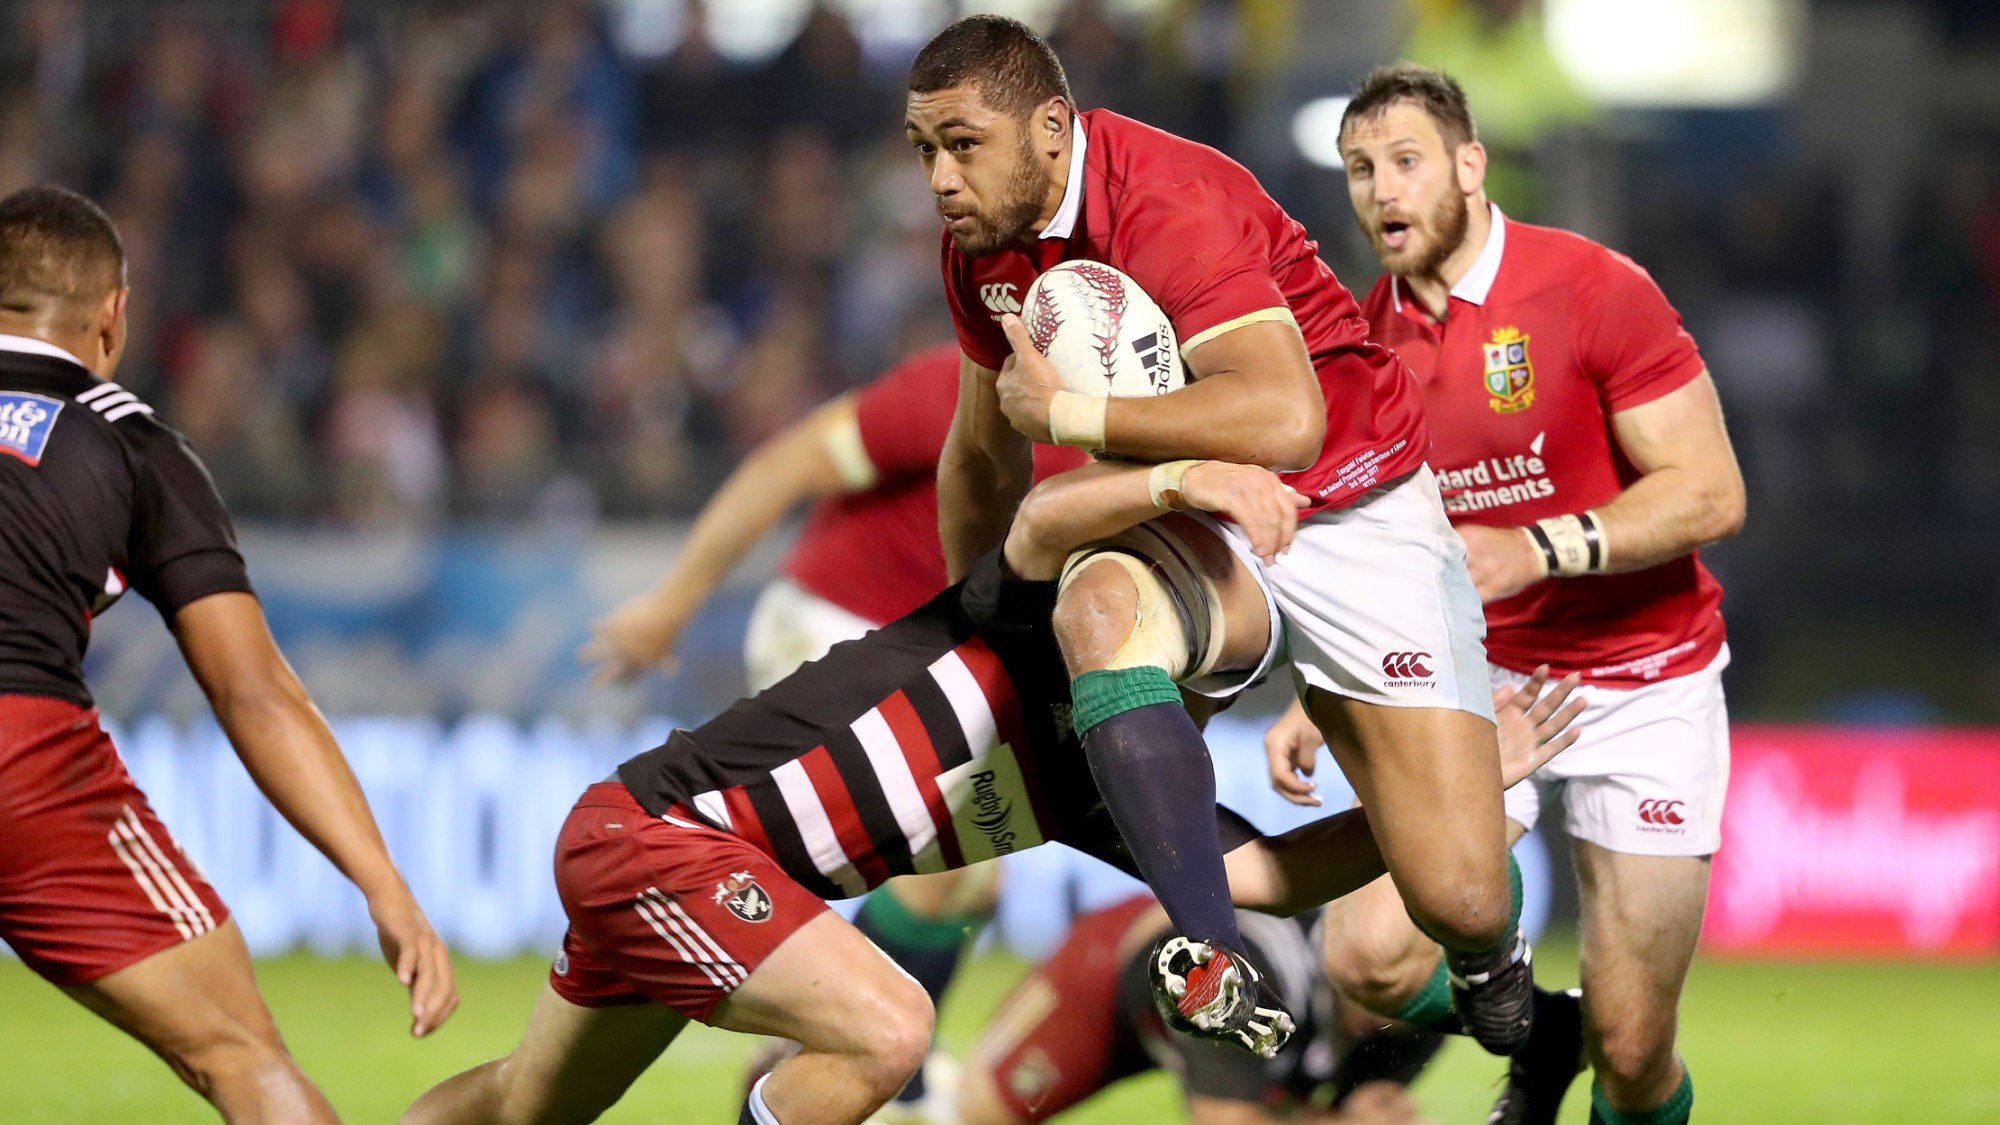 Faletau focused on work still to come for Lions